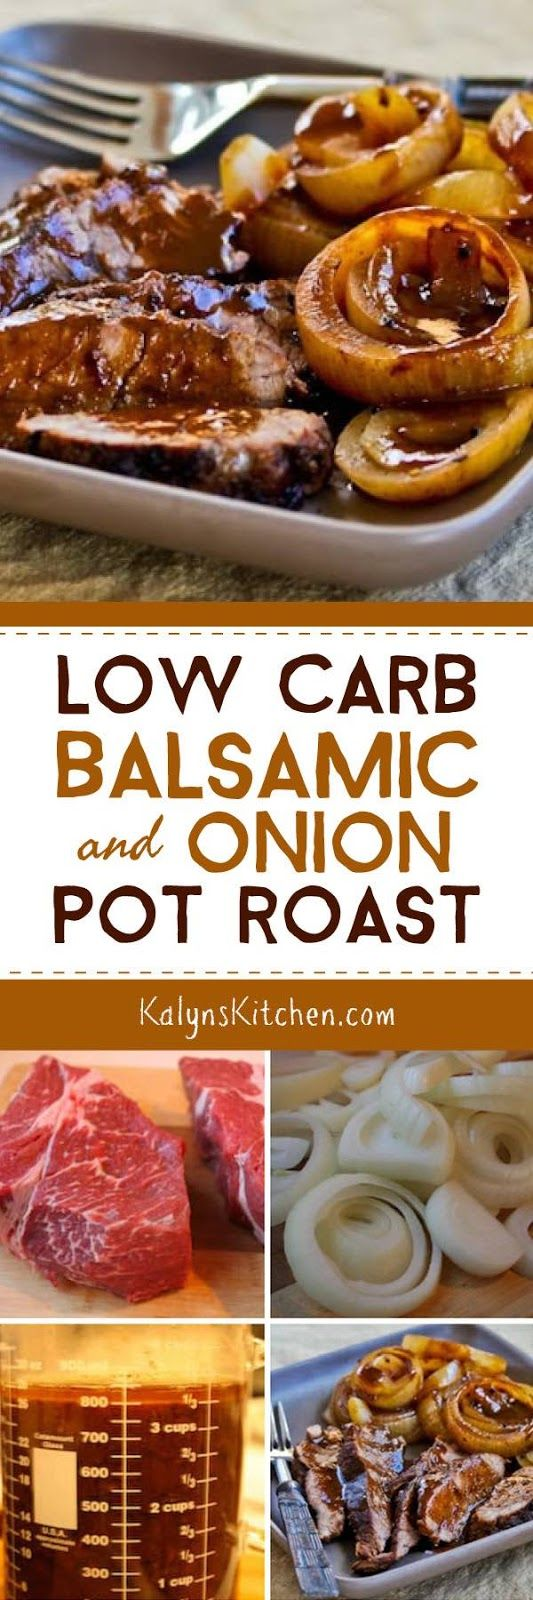 Low Carb Balsamic Onion Pot Roast Found Kalyn S Kitchen